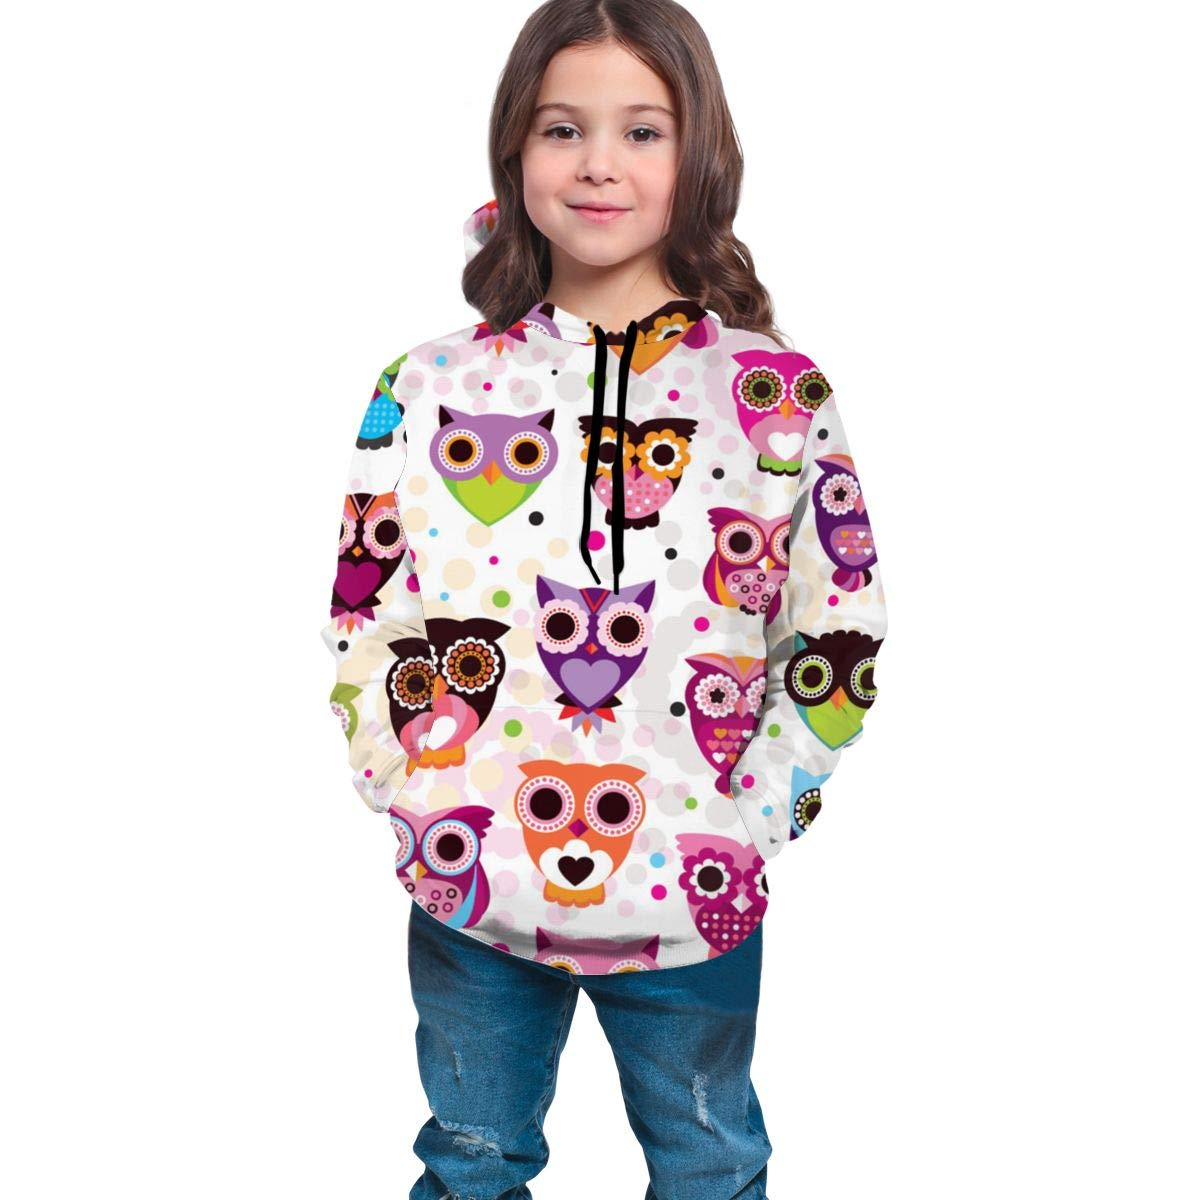 Youth 3D Print Colored Owl Hooded Sweatshirt Kids